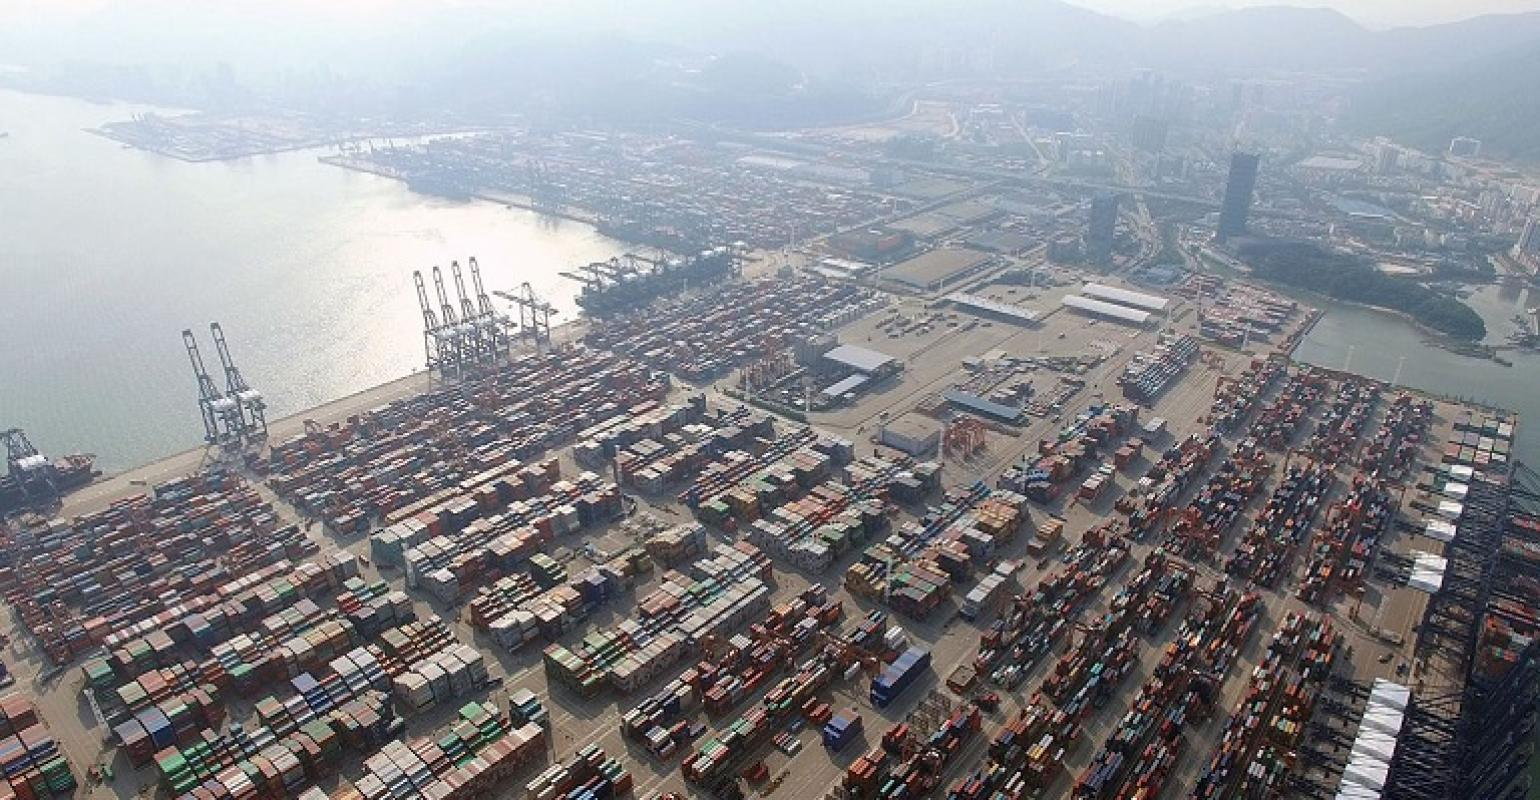 Covid outbreak at Chinese port exacerbates global supply chain delays